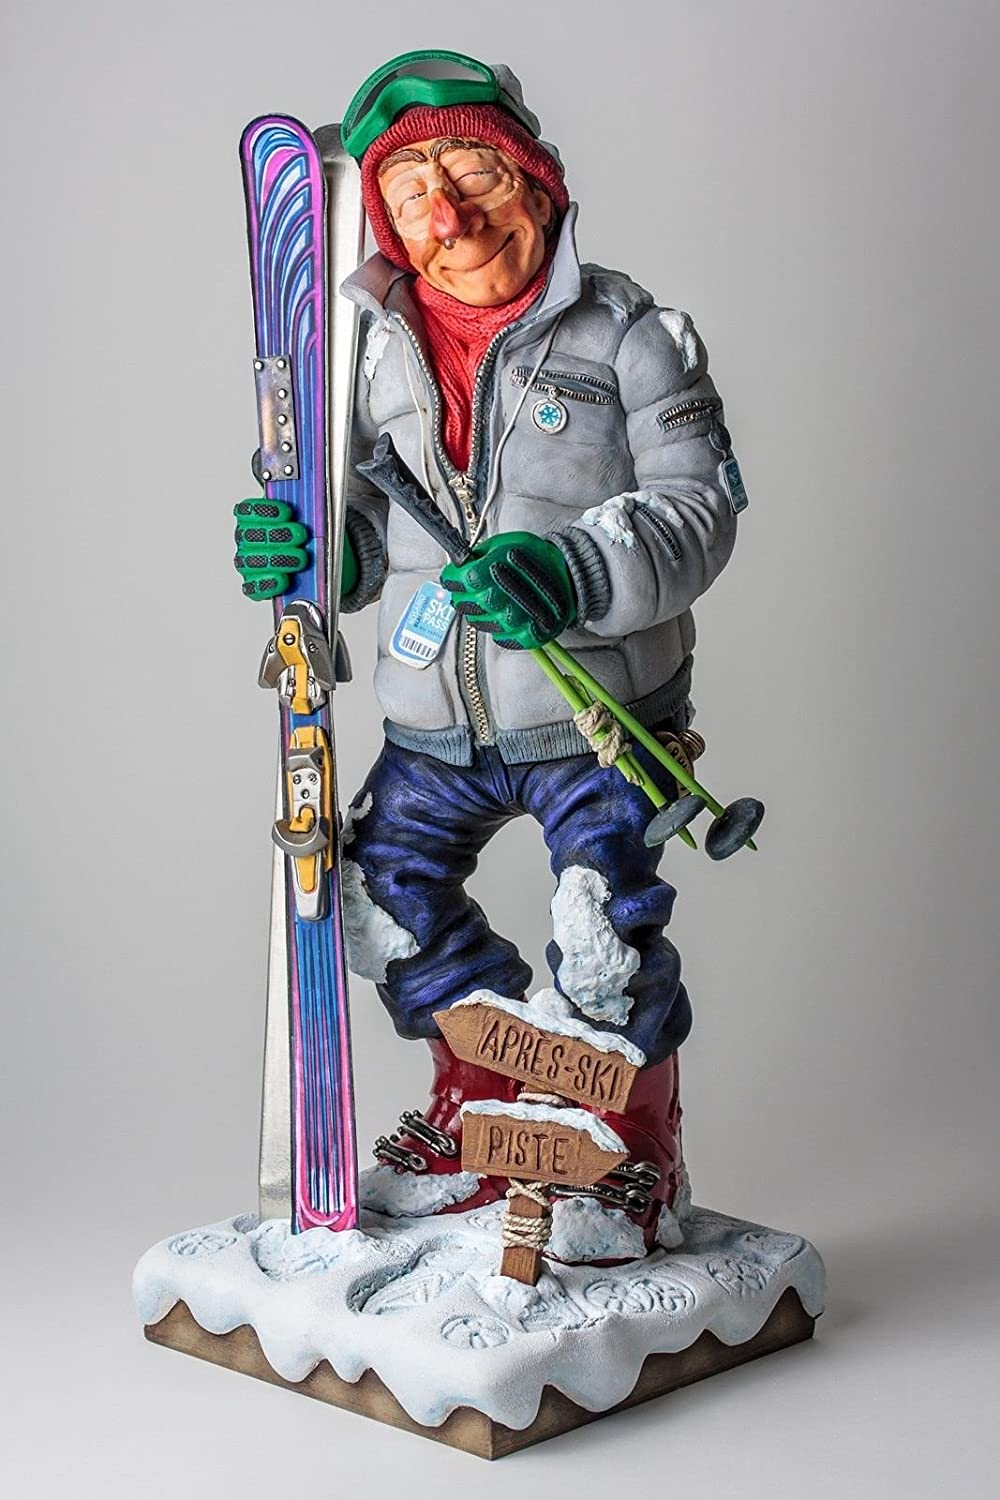 Skier Figurine  - by Guillermo Forchino - 17 Inch Tall